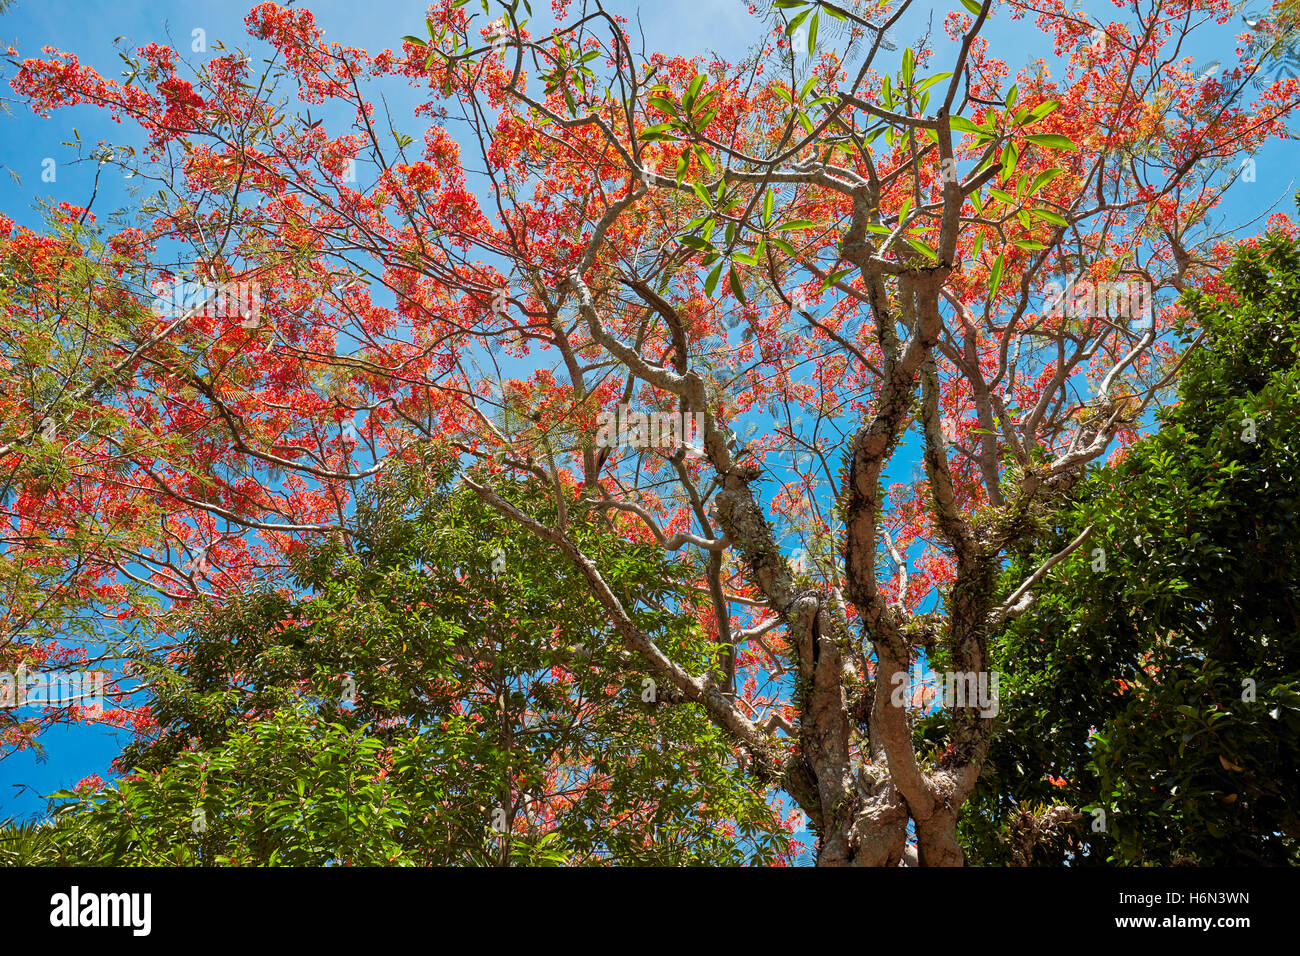 Royal Poinciana (Flame Tree) blossoming branches, Vietnam. Scientific name: Delonix regia. - Stock Image